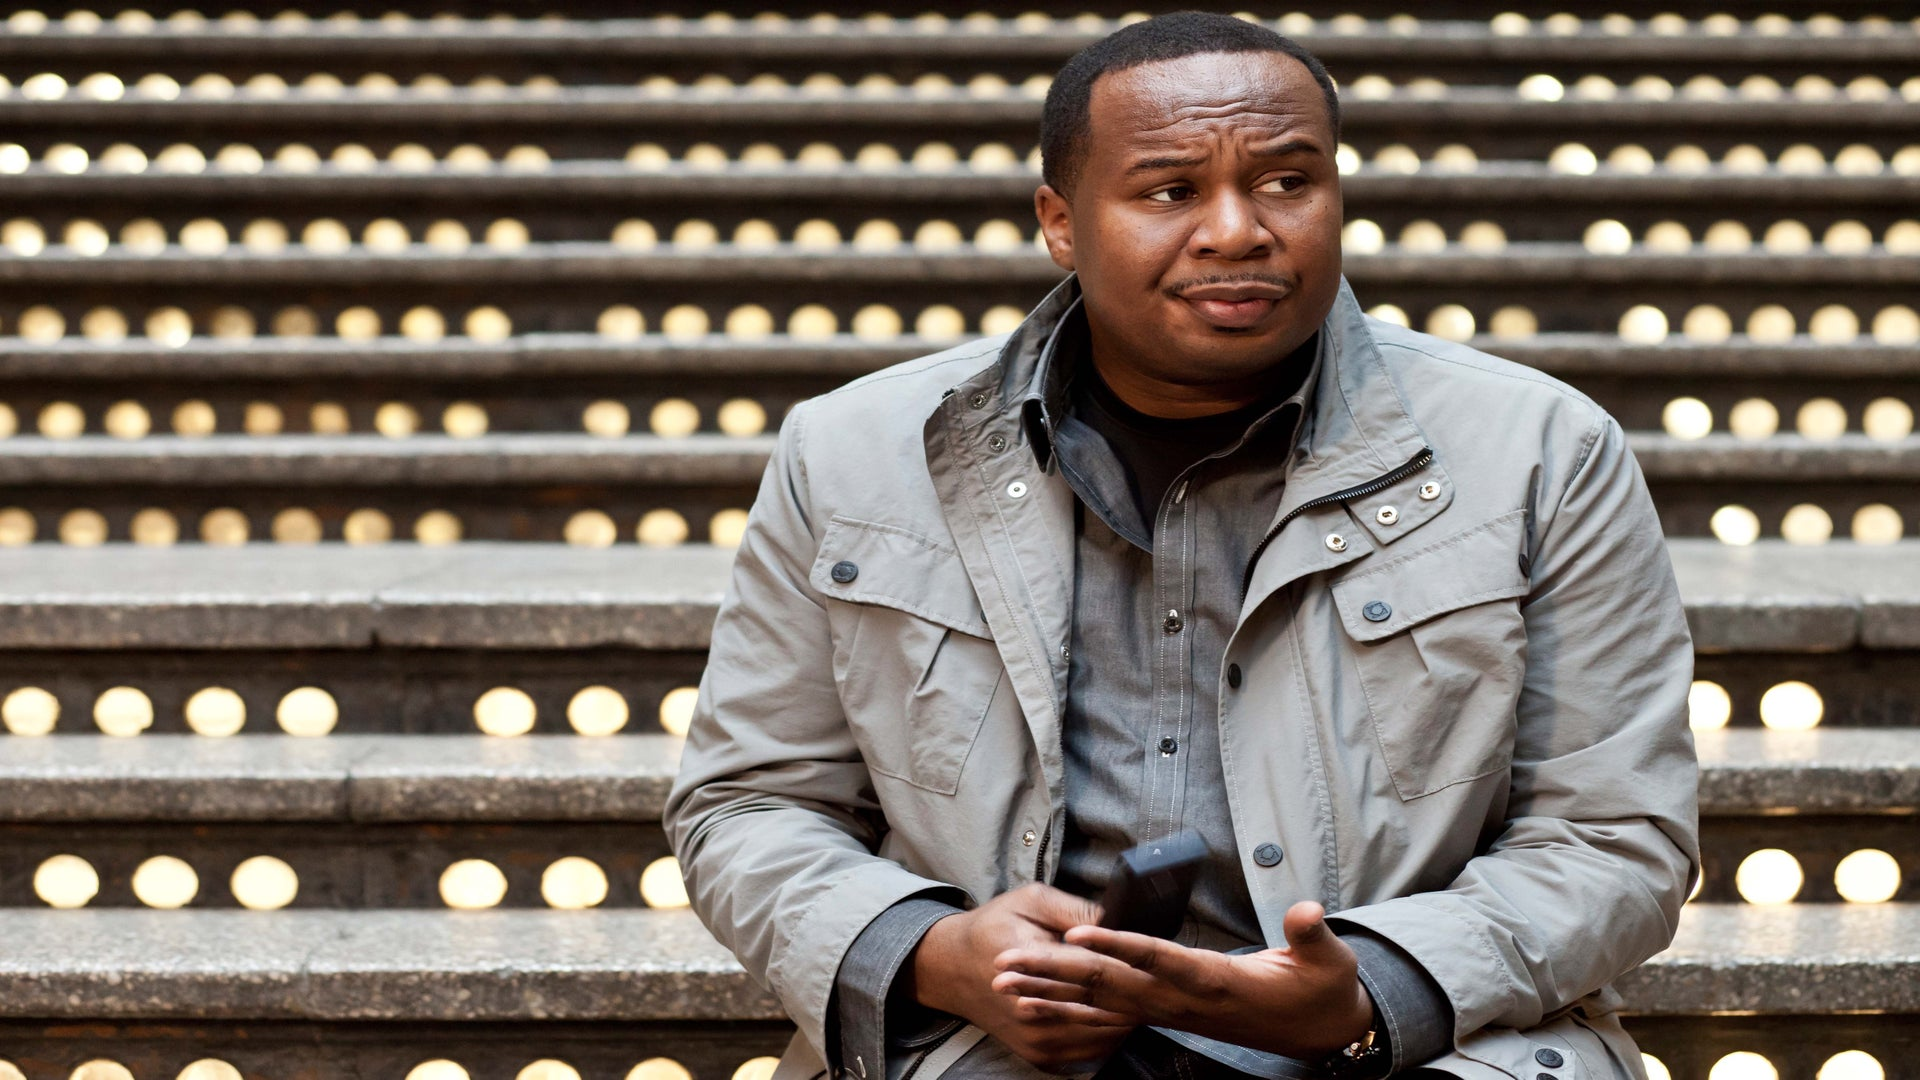 'The Daily Show's' Roy Wood Jr. To Host 2017 ESSENCE Festival Mainstage